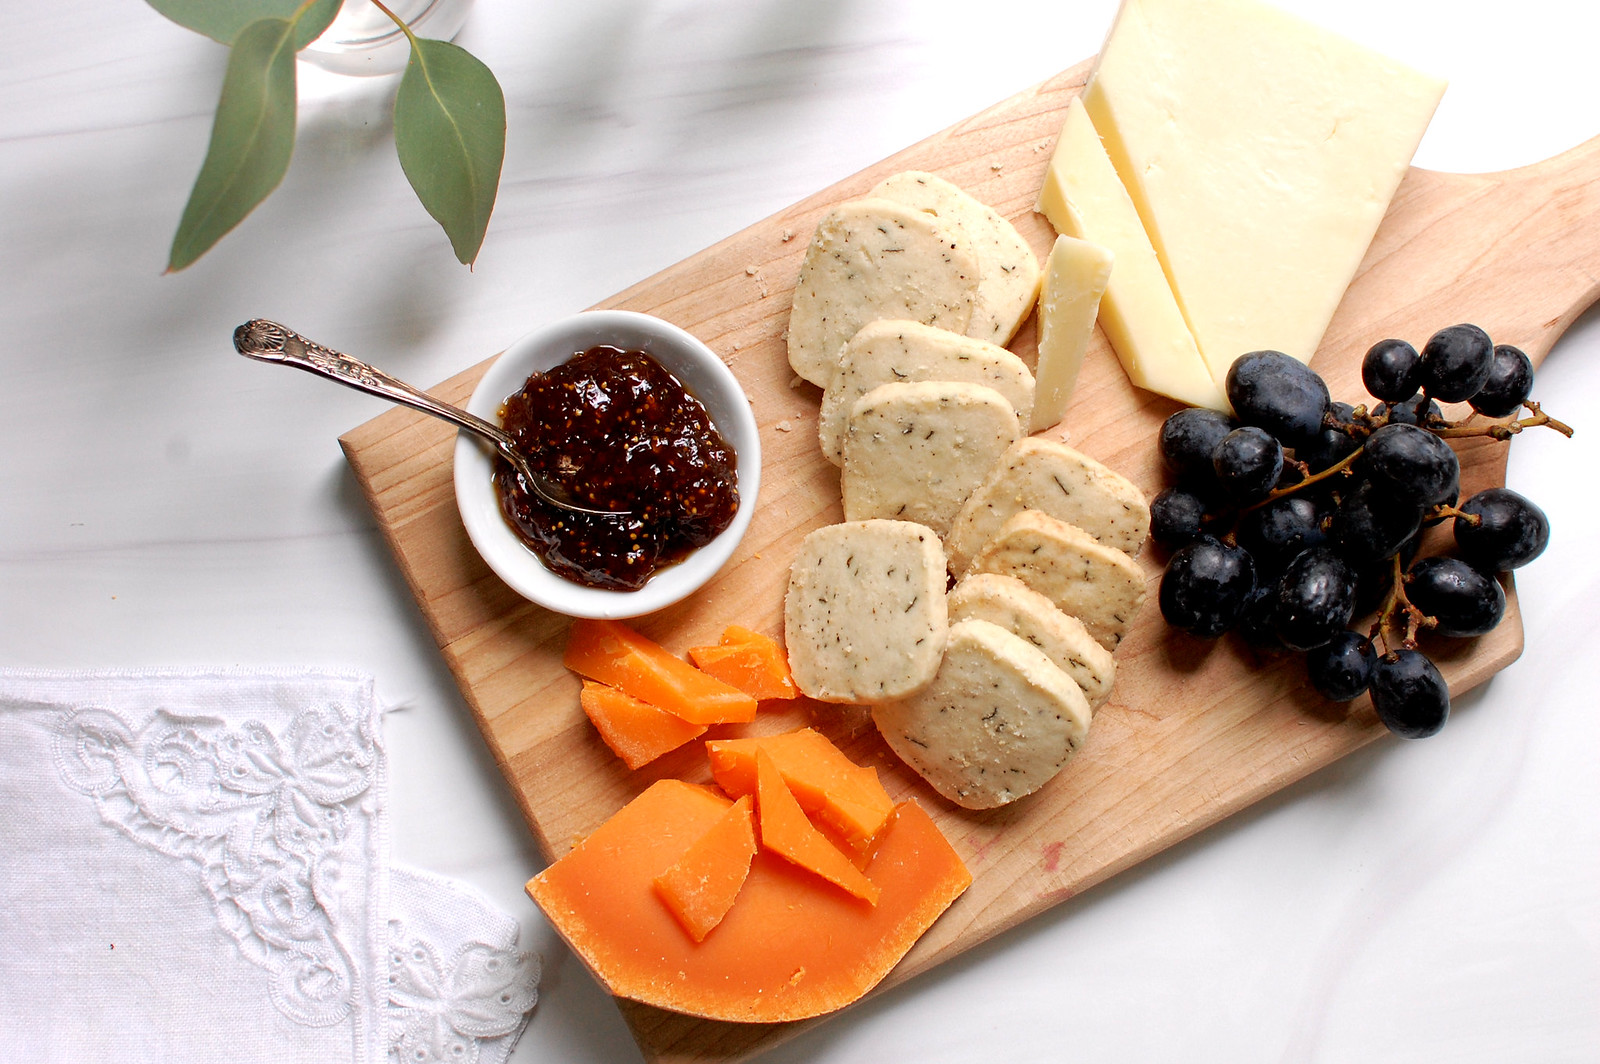 wood cutting board with cheese and crackers